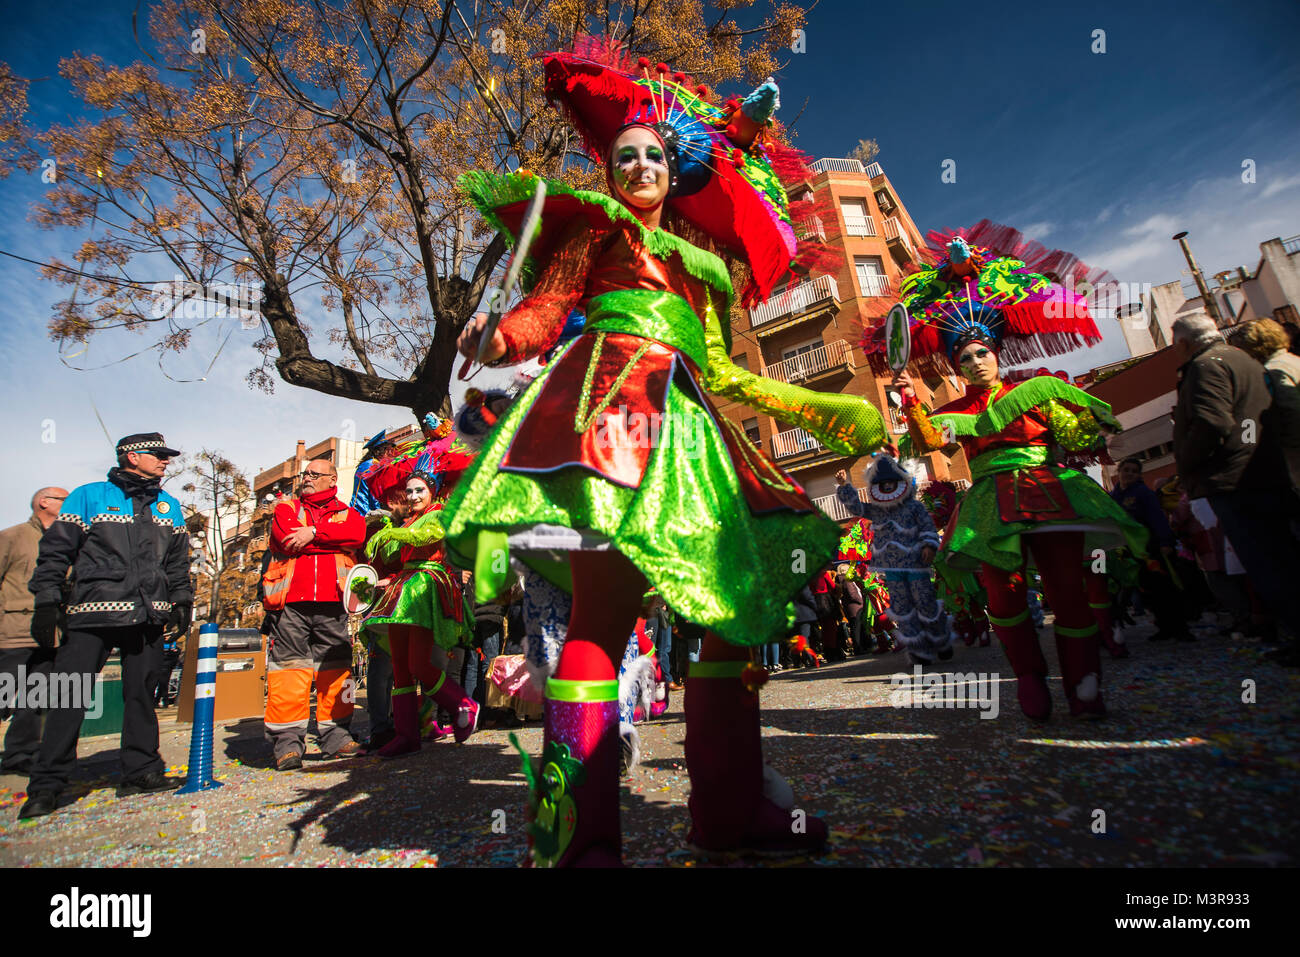 a carnival paty the day that you can find the streets full of life